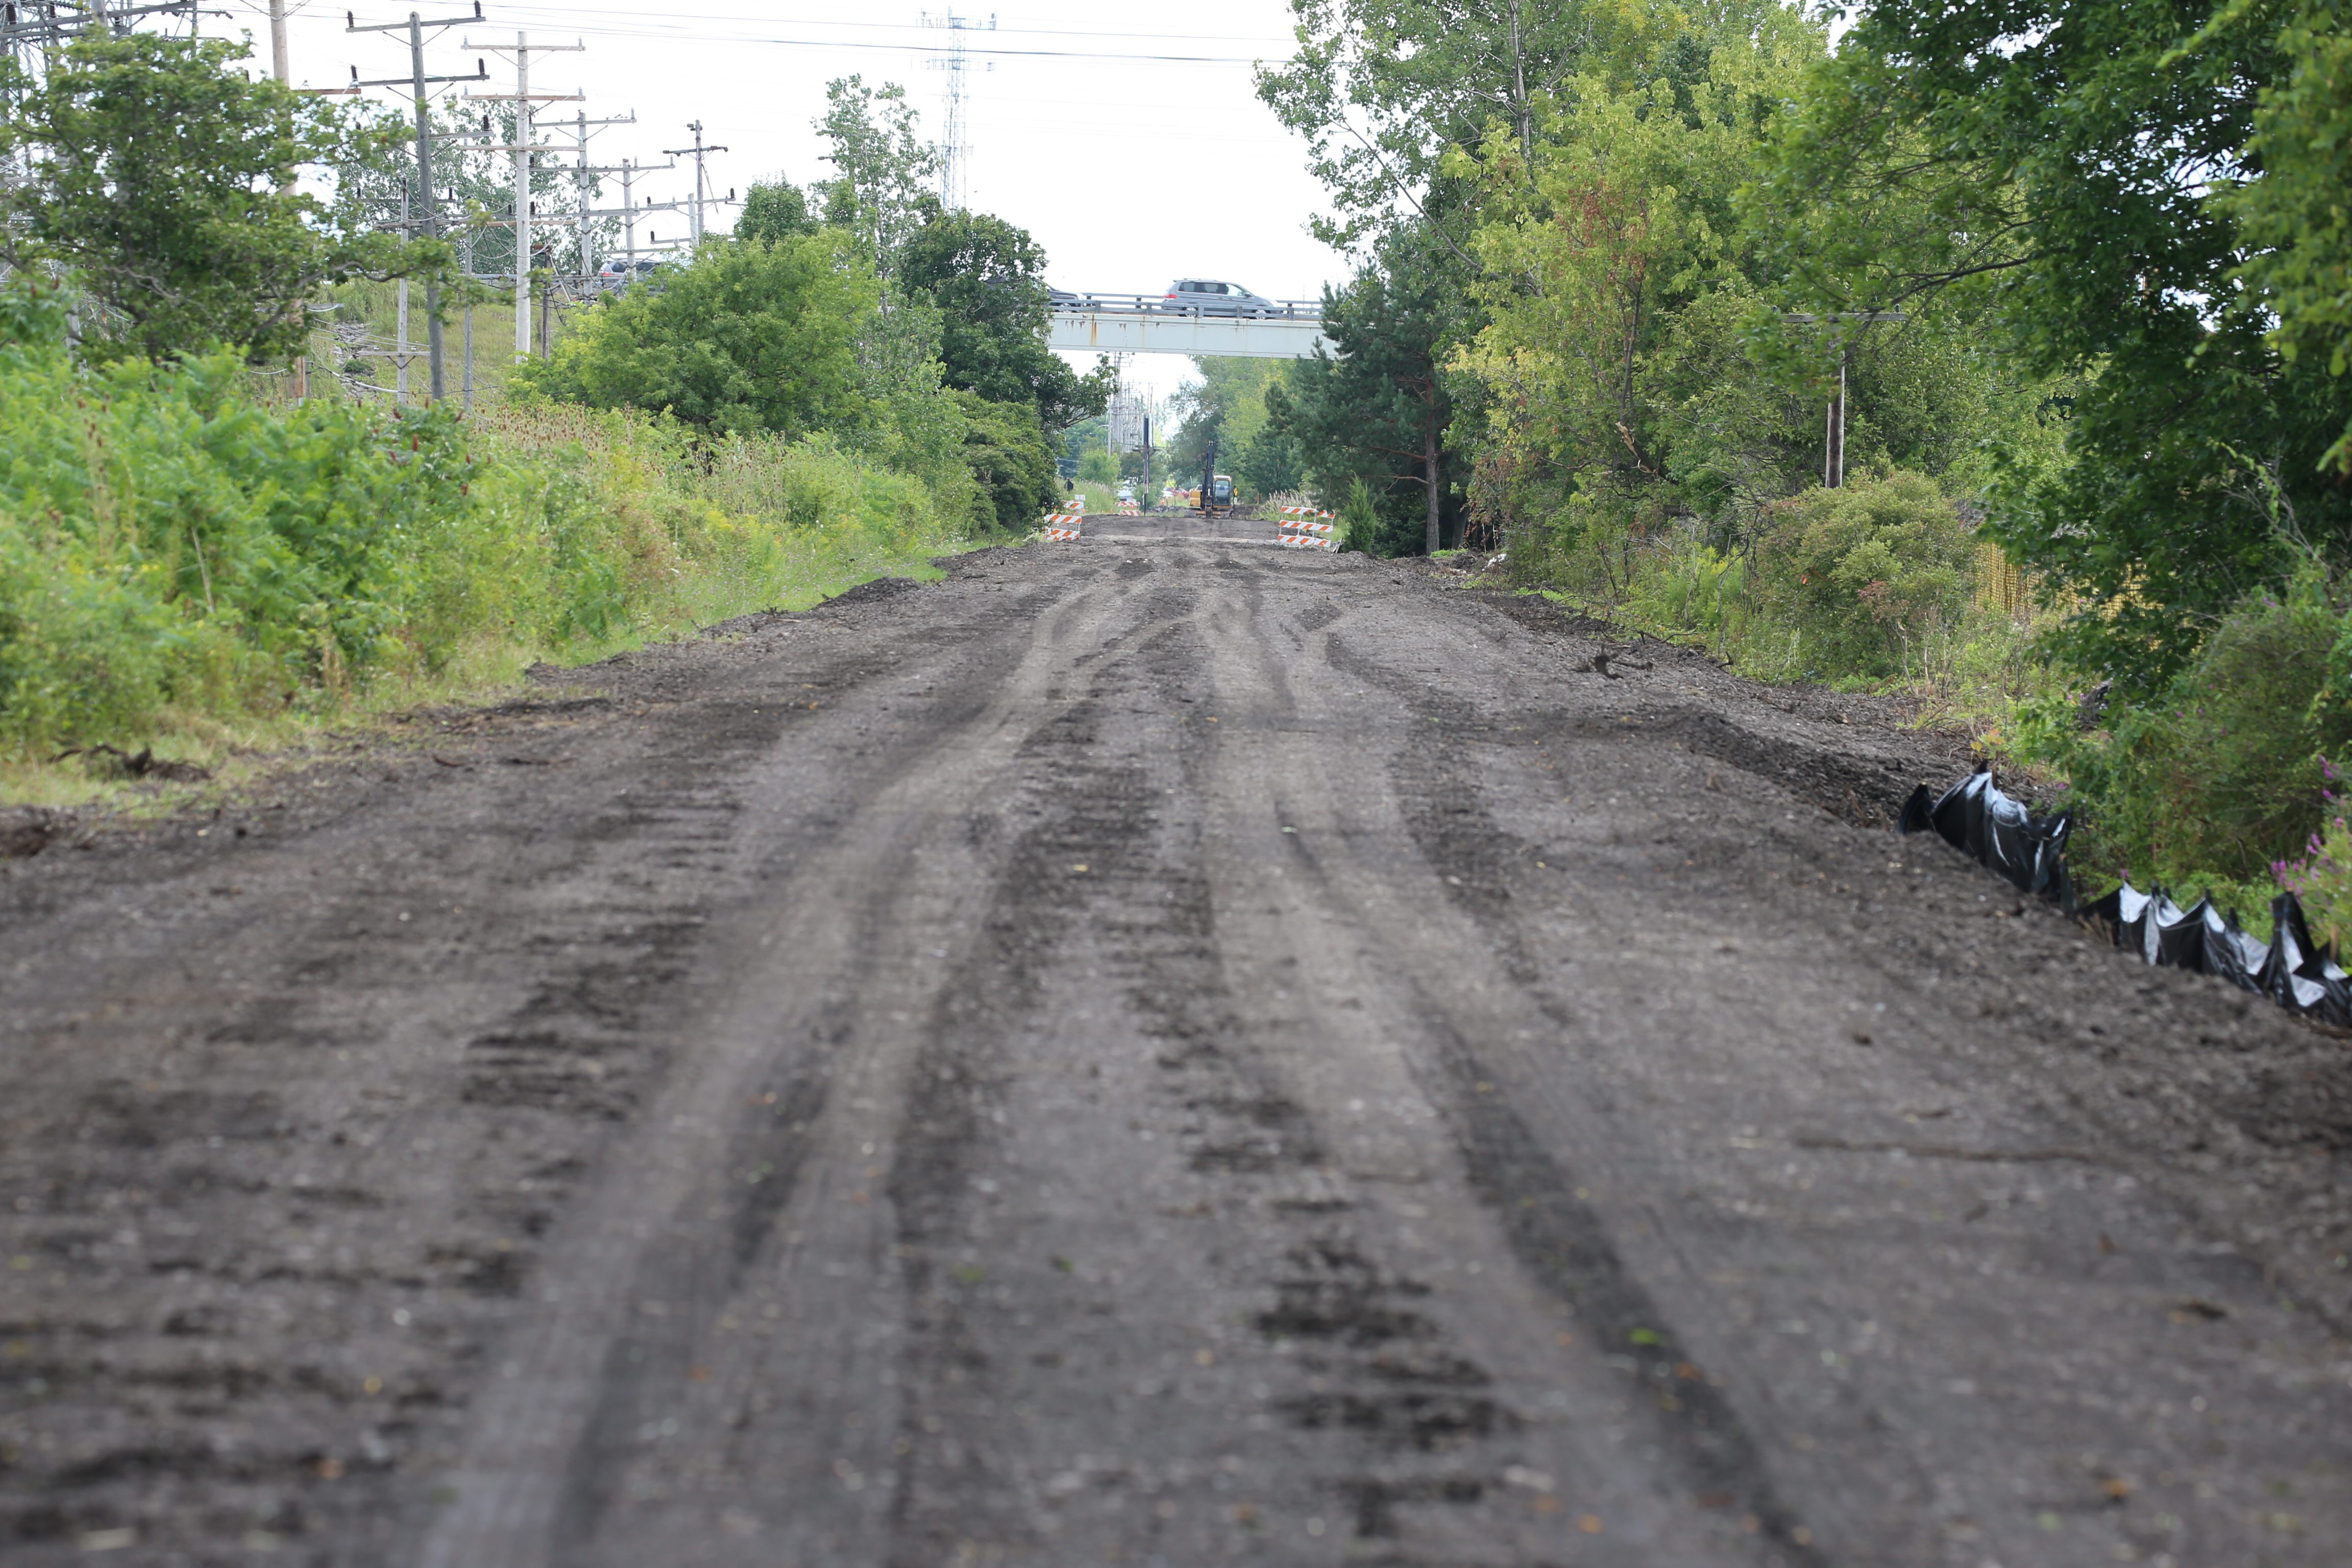 After 15 years of planning, construction on the Rails to Trails got underway in 2015.